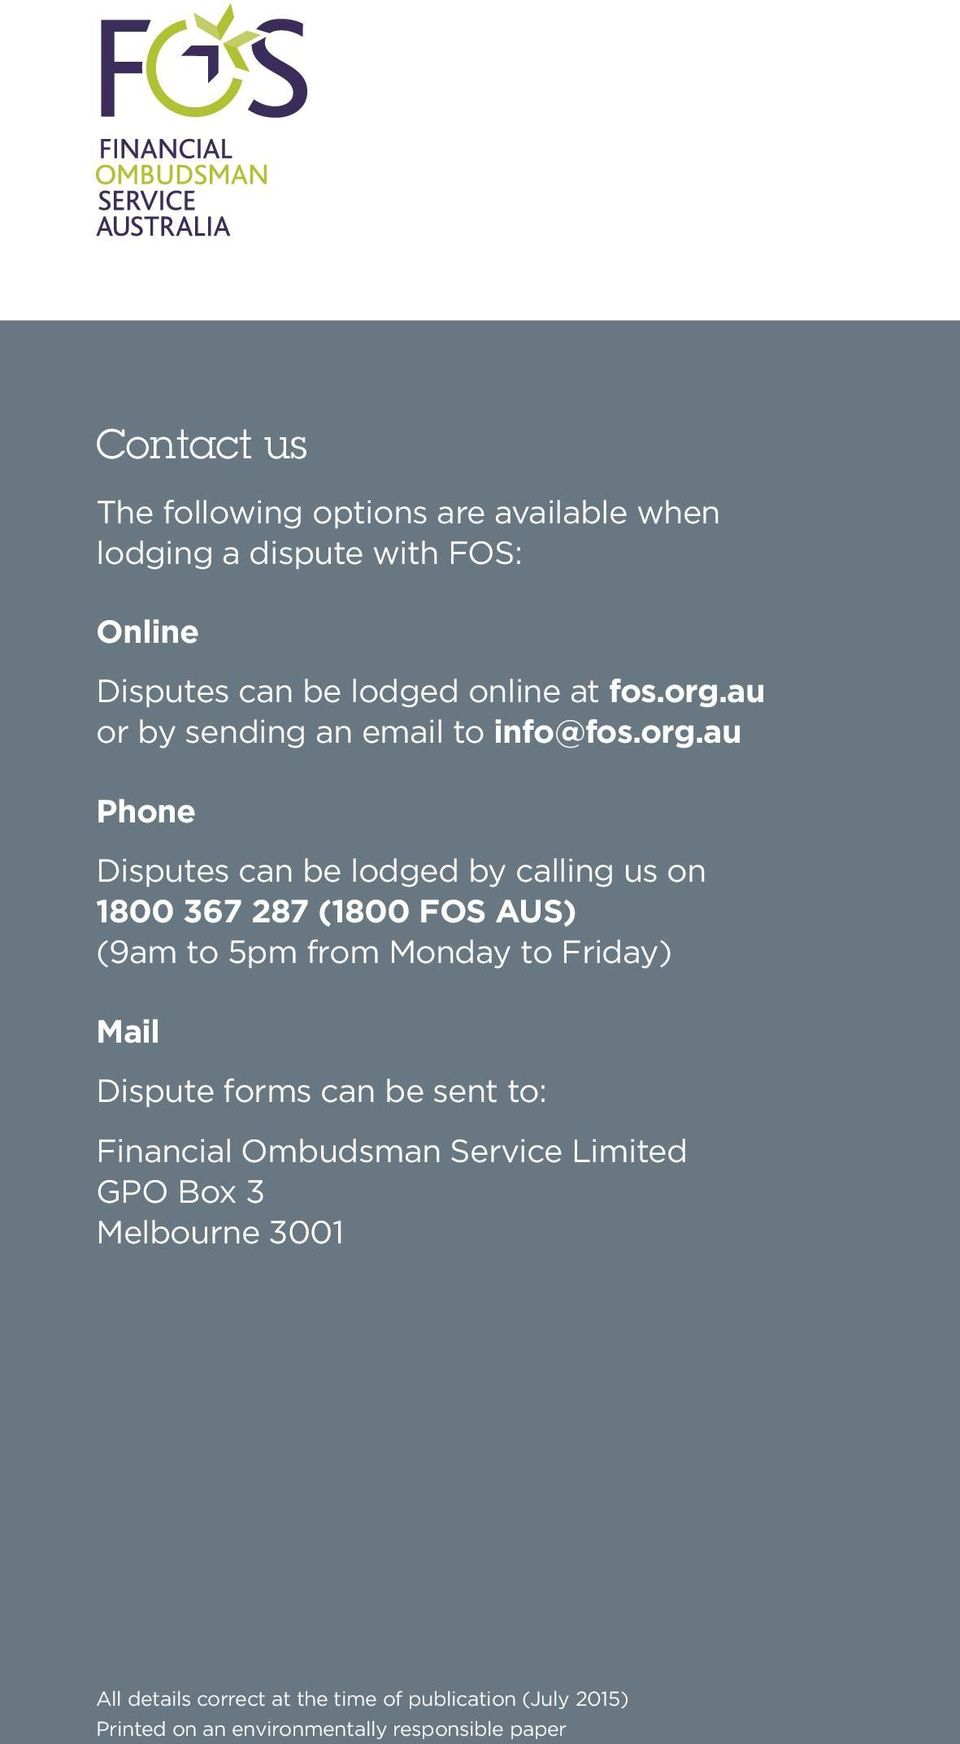 au or by sending an email to info@au Phone Disputes can be lodged by calling us on 1800 367 287 (1800 FOS AUS) (9am to